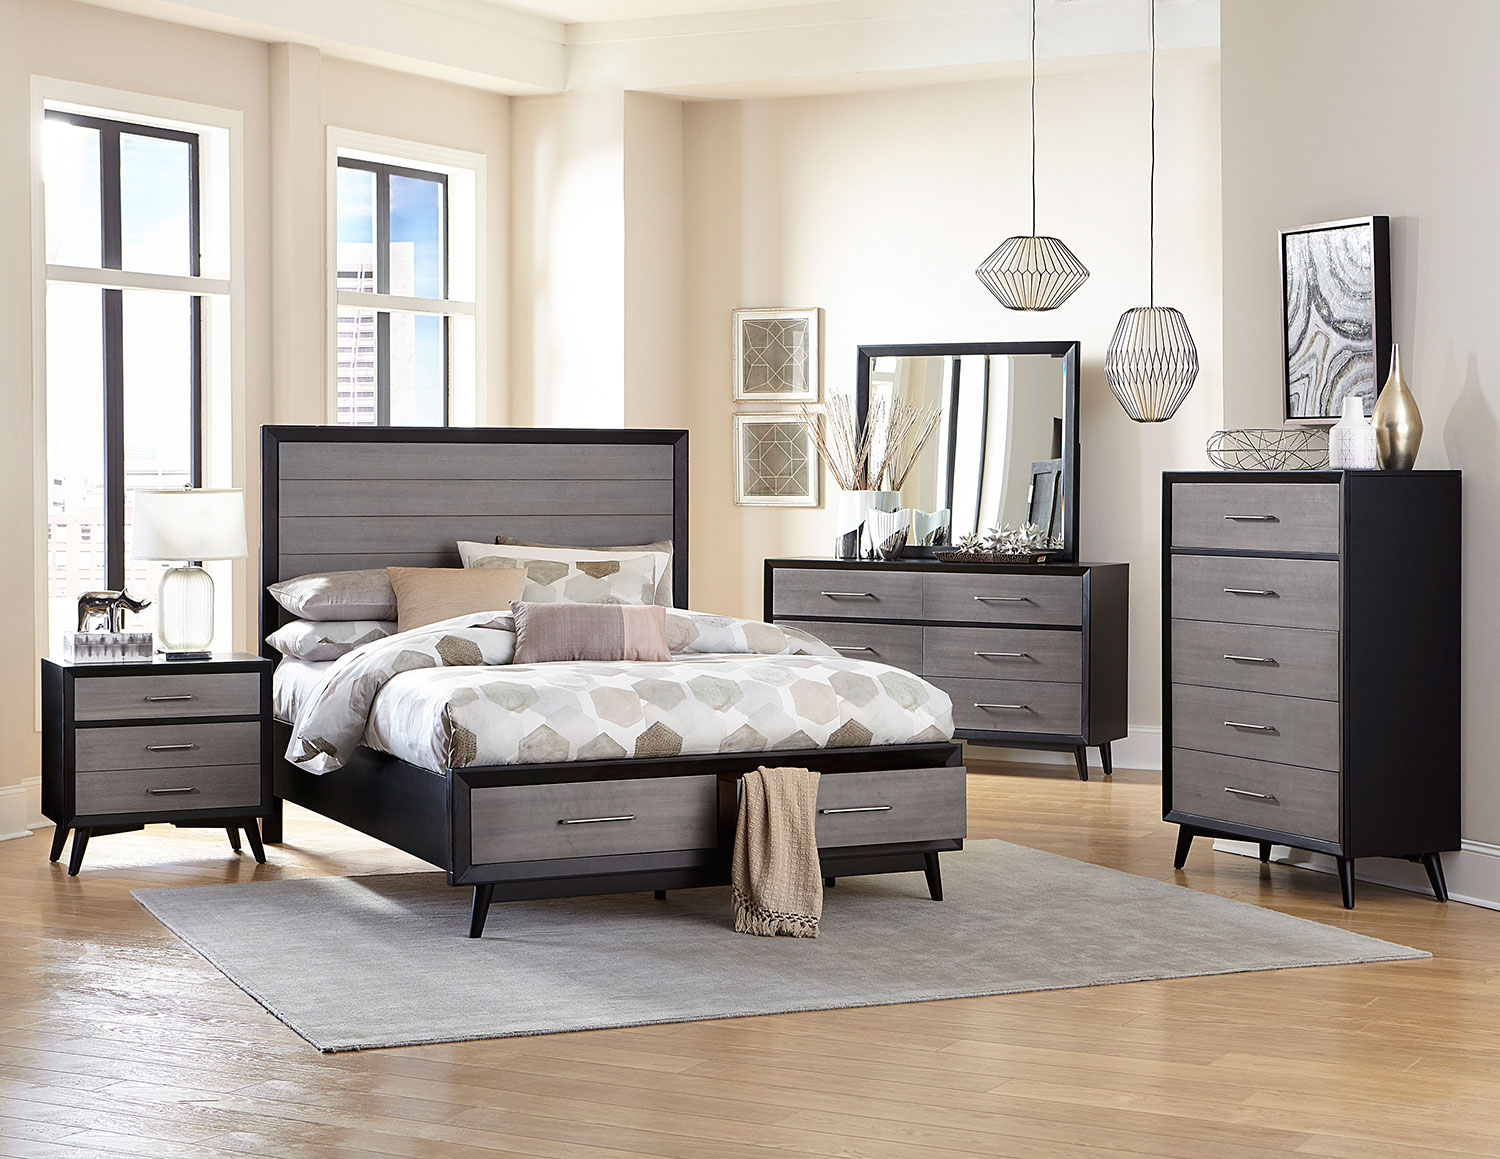 Homelegance Raku Bedroom Set - Barnwood Grey 1711-BEDROOM-SET at ...